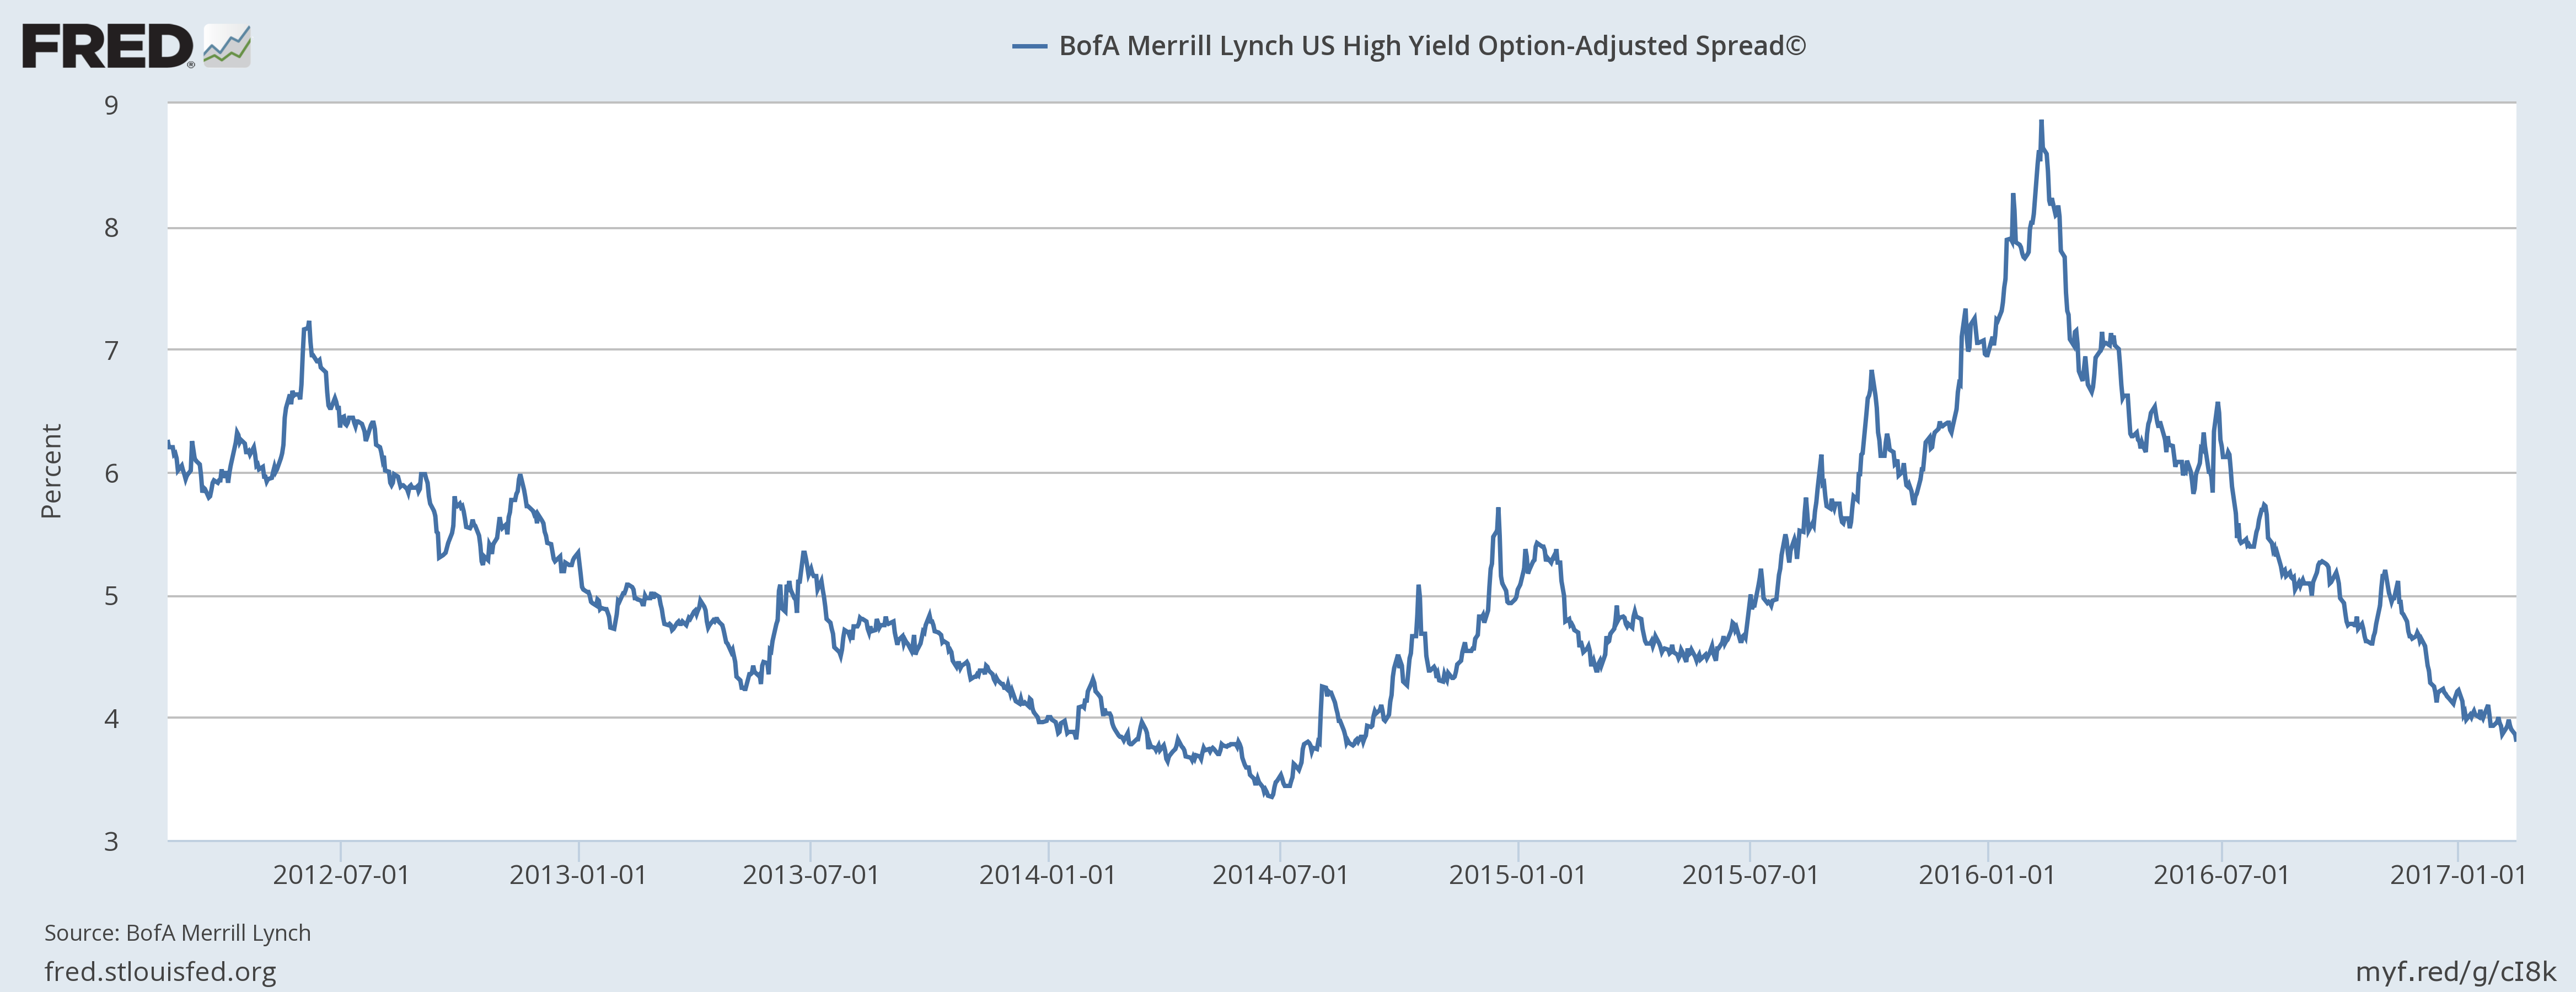 BOFA Merrill Lynch US High Yield Option Adjusted Spread January 2012 - January 2017